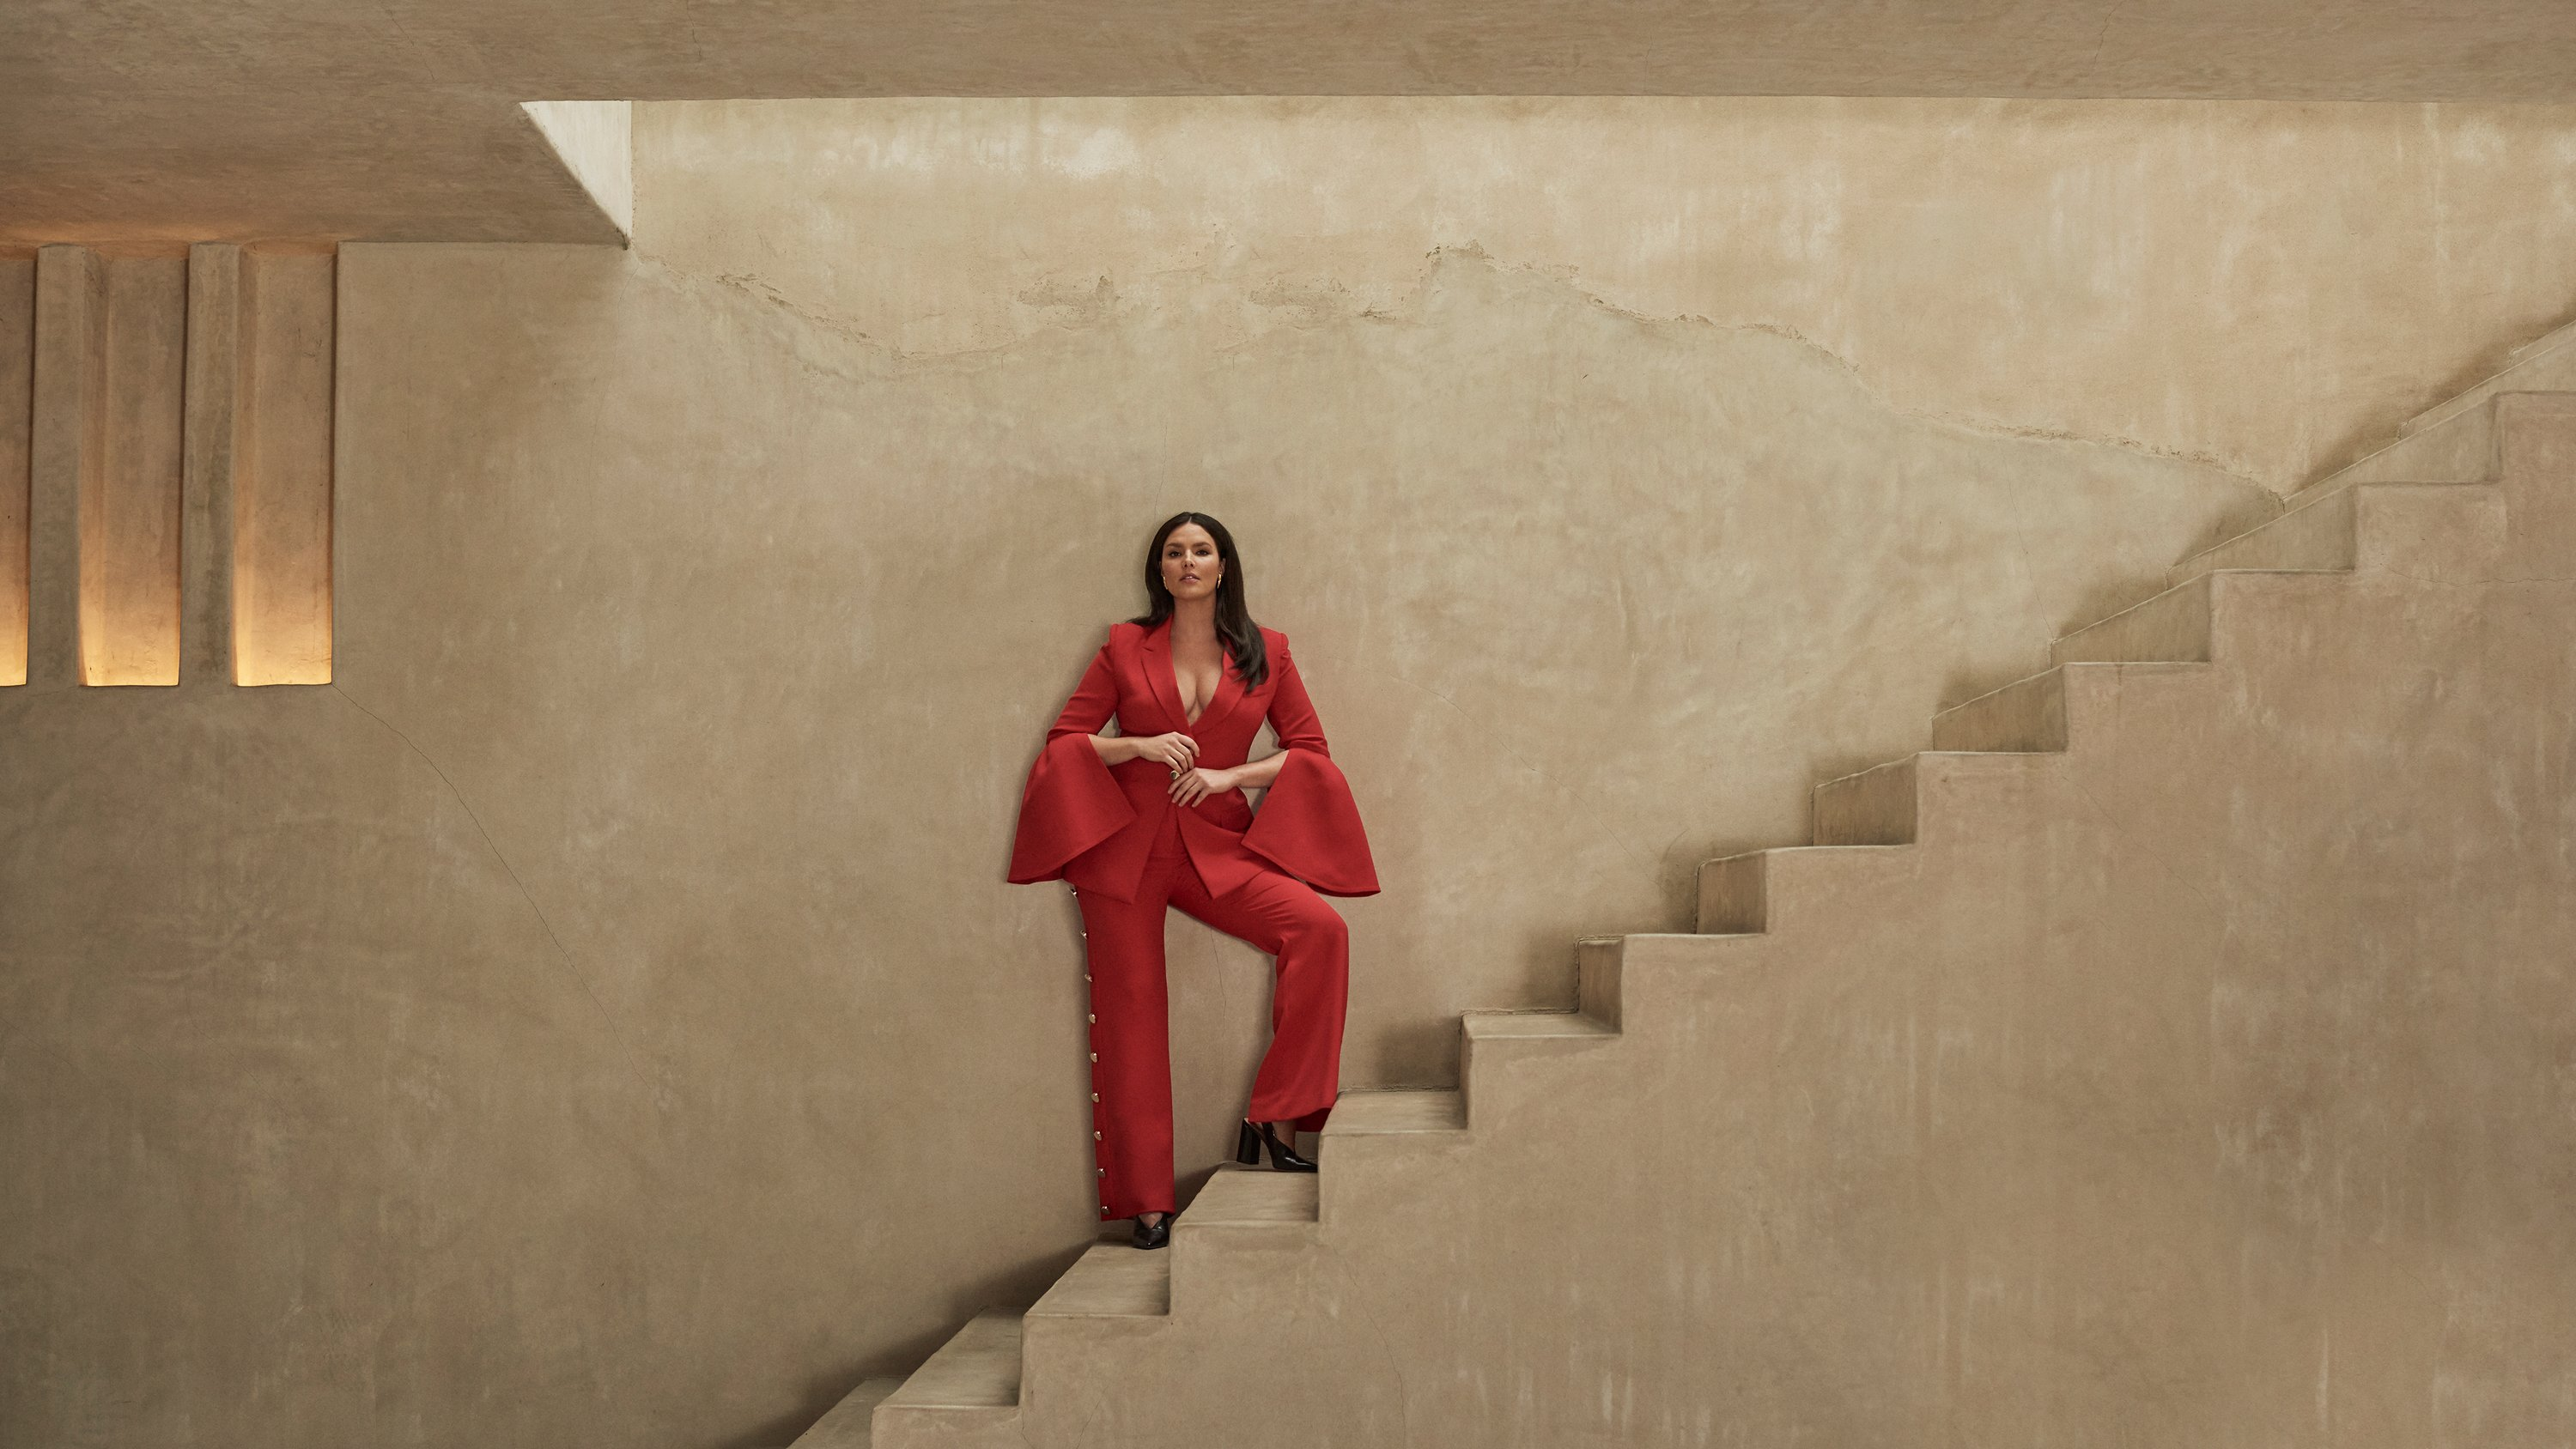 Model Candice Huffline wearing red power suit with dramatic sleeves, Ad campaign. Art Direction by RoAndCo